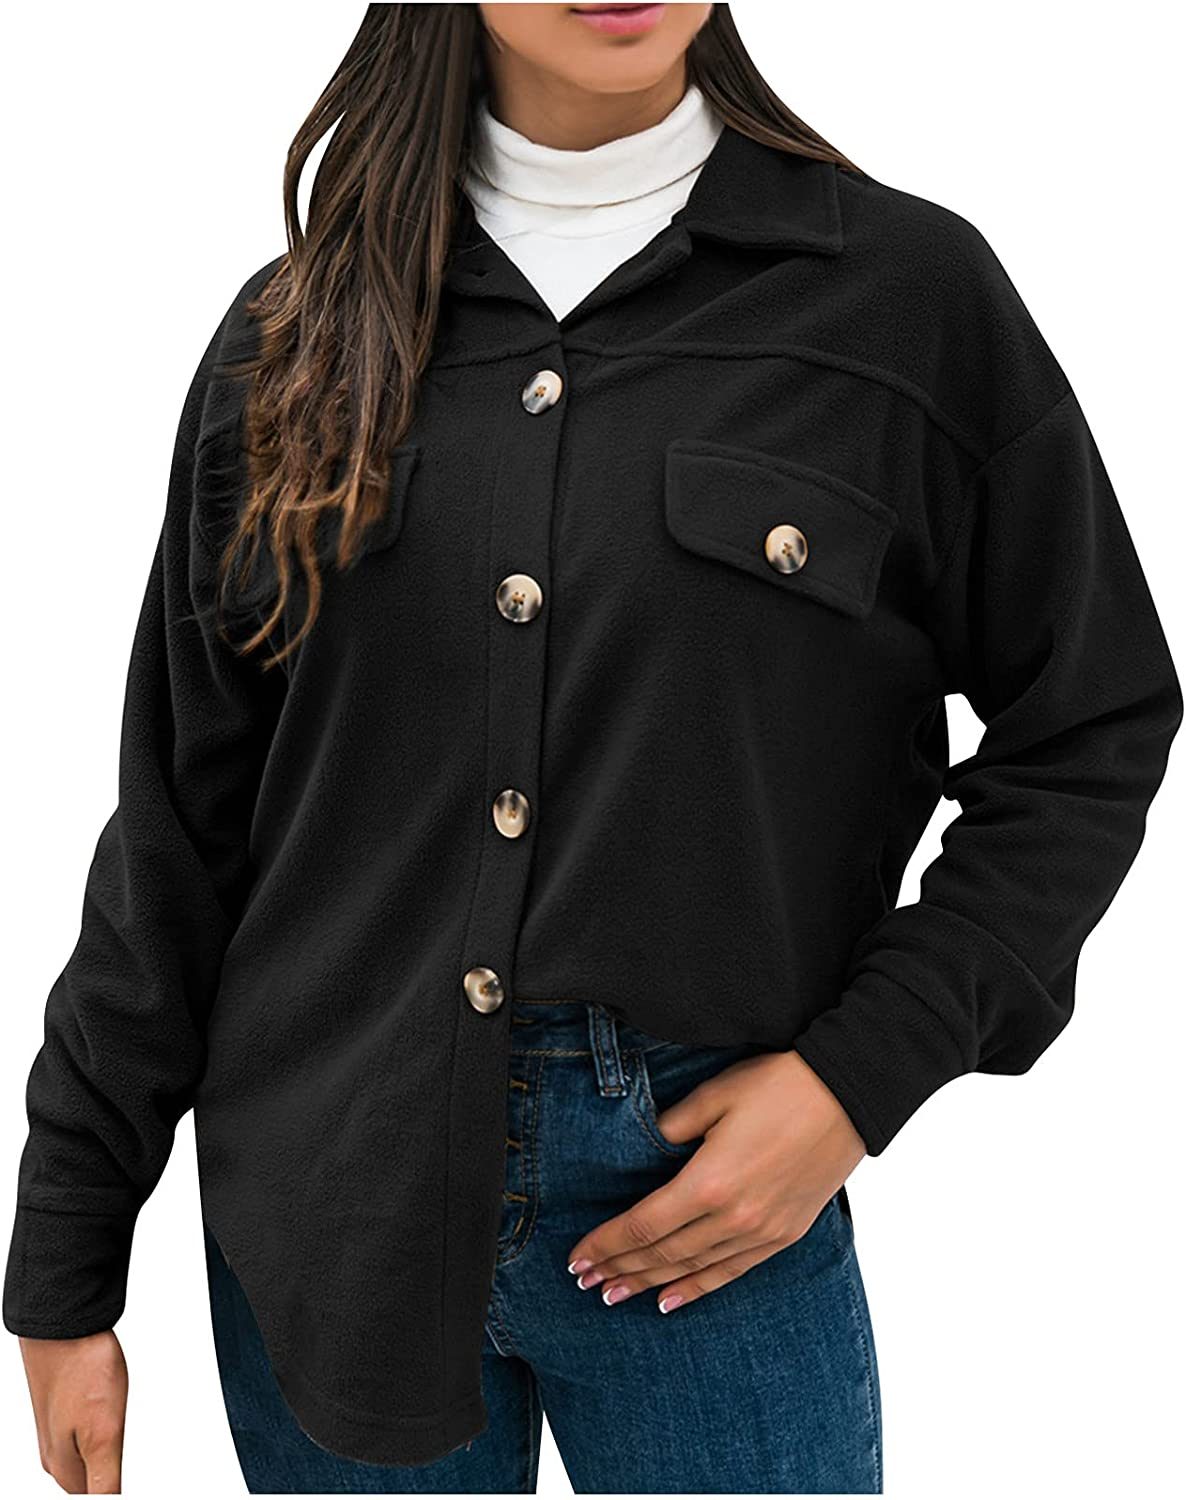 Teacher Clothes Button Down Casual Cardigan Solid Color Comfy Lapel Tunics Fall Thin Long Sleeve Outerwear